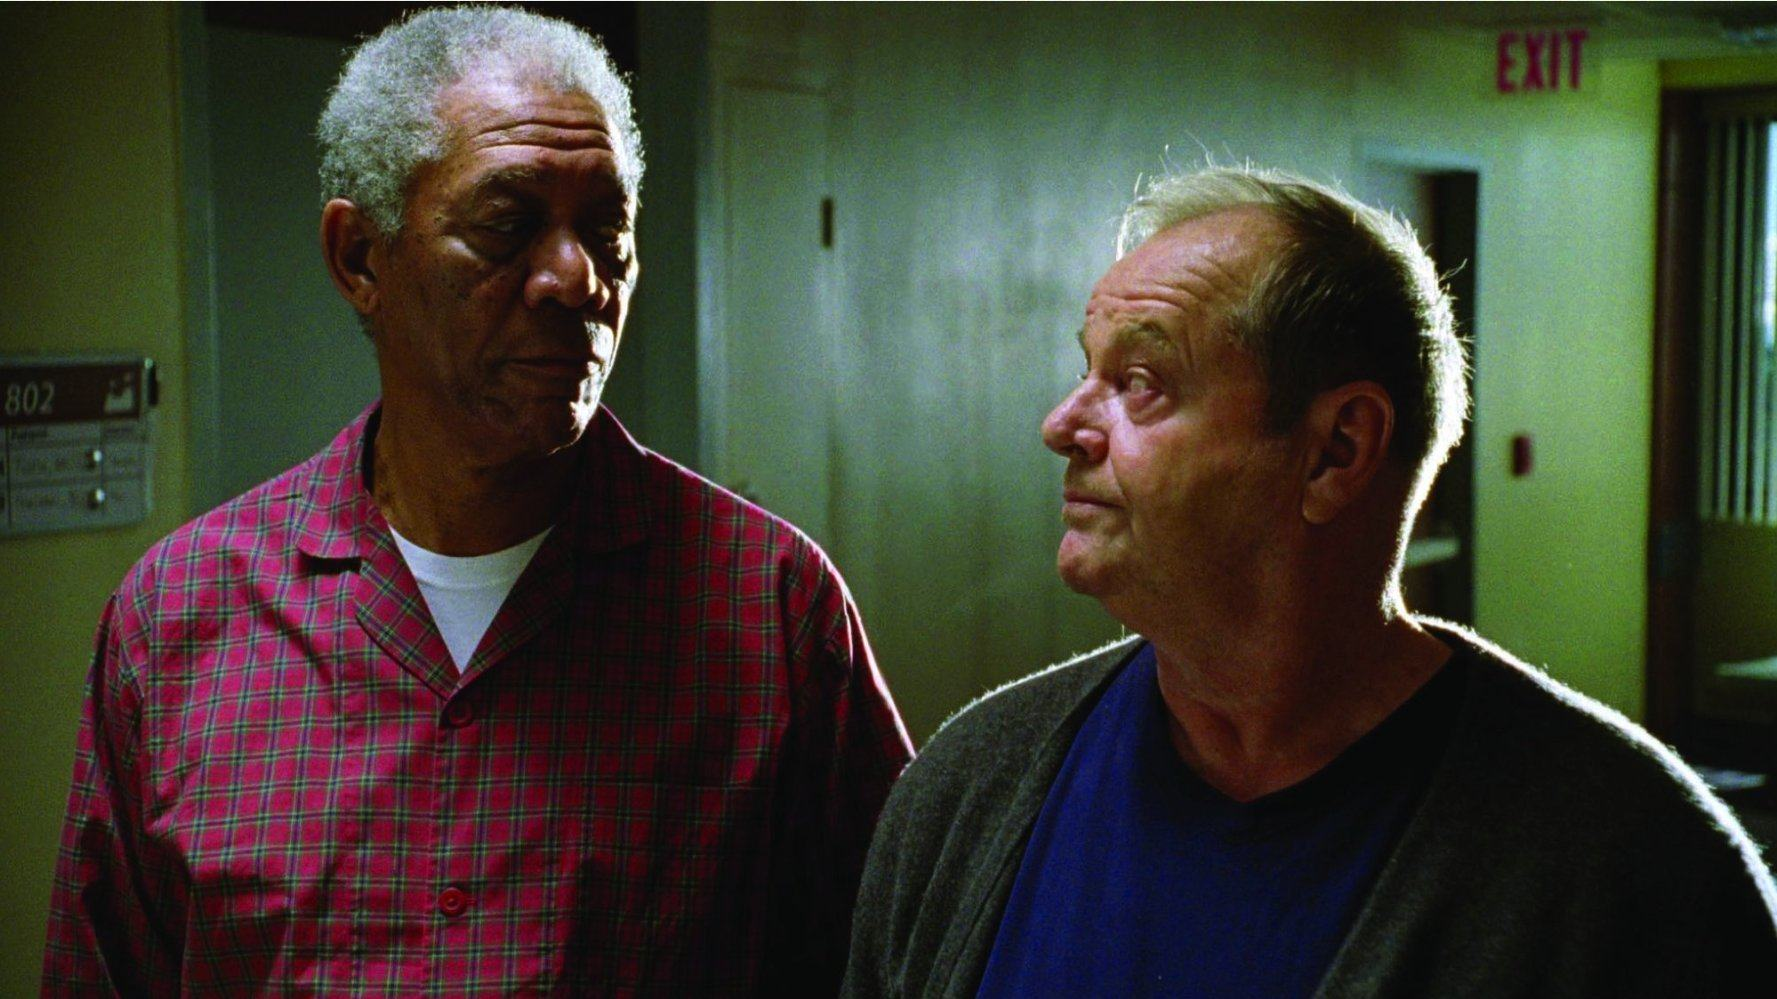 Morgan Freeman and Jack Nicholson look at each other in The Bucket List